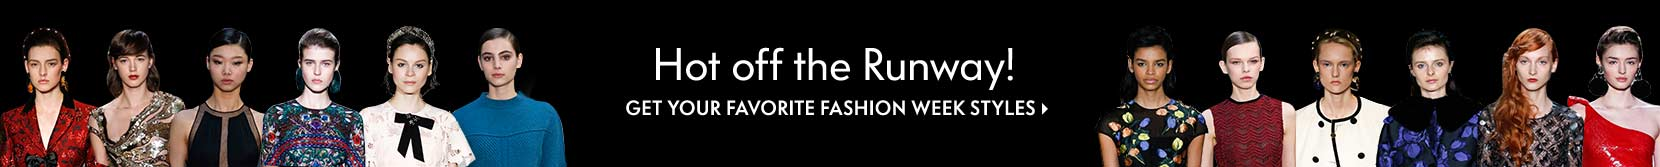 Hot off the runway! Get your favorit fashion week styles